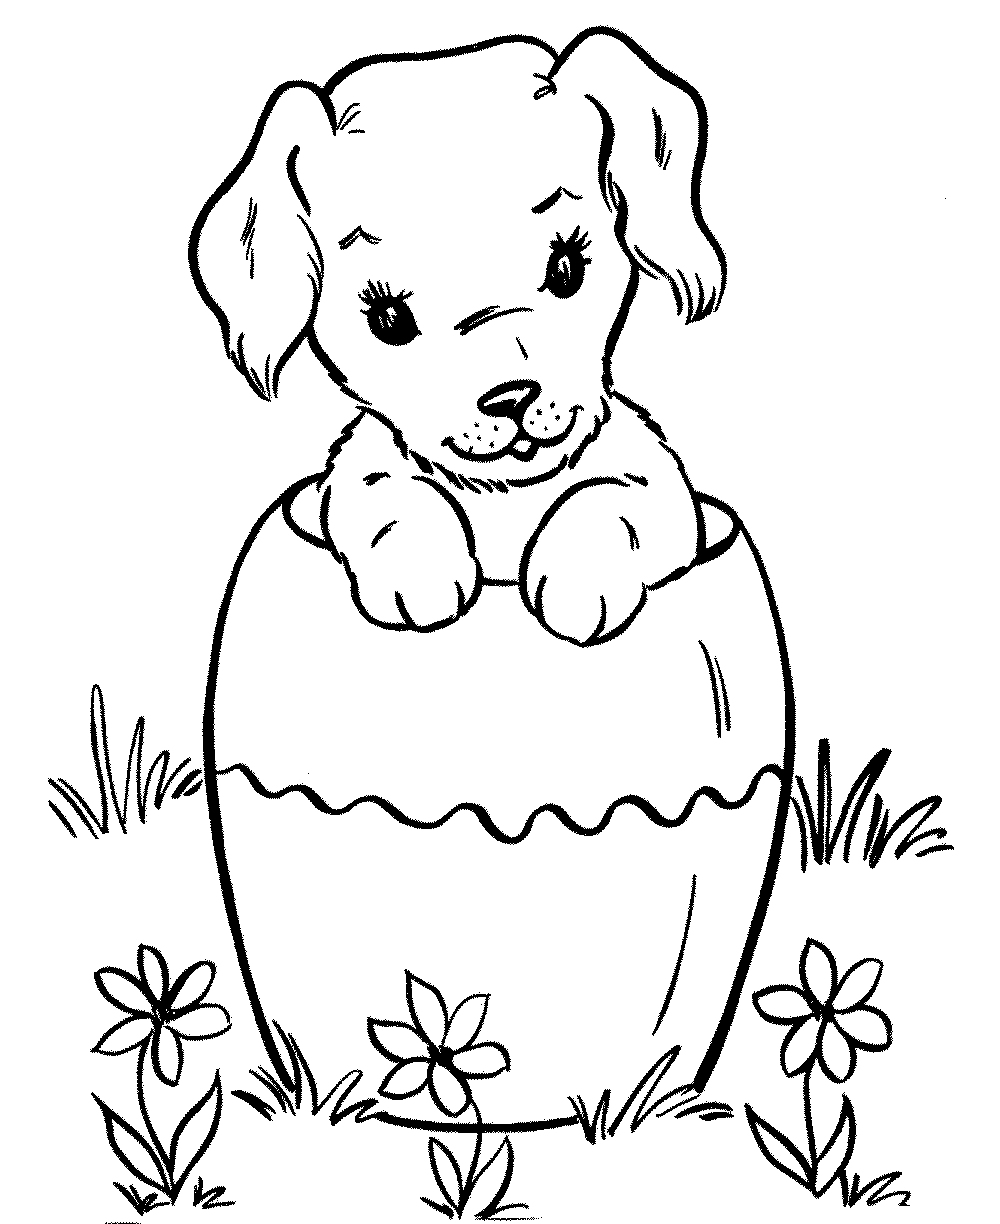 biscuit the dog coloring pages biscuit the dog coloring book pages sketch coloring page biscuit dog pages coloring the